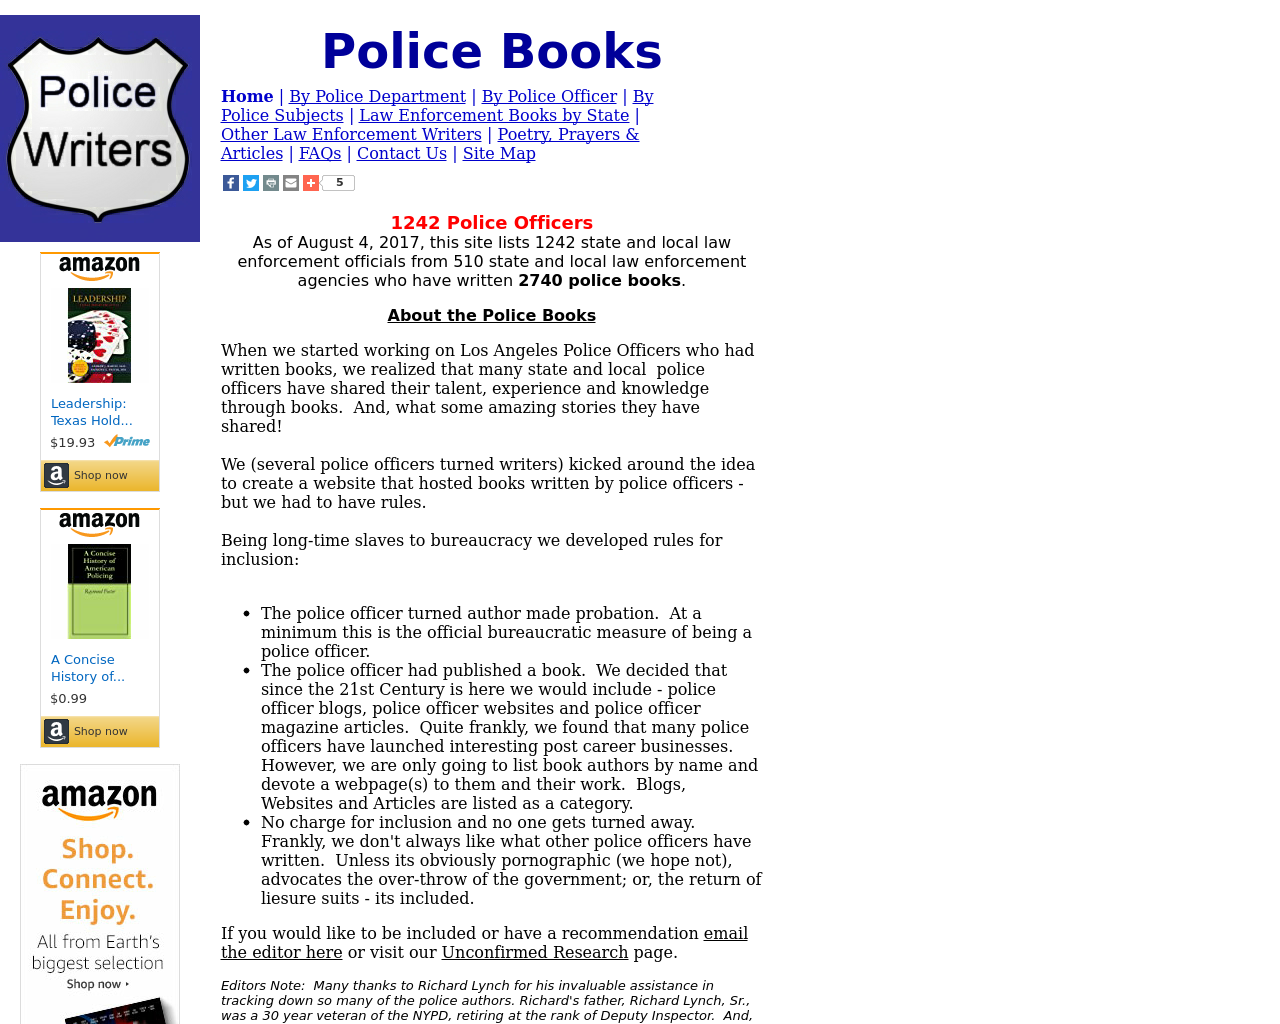 Police-Writers-Advertising-Reviews-Pricing